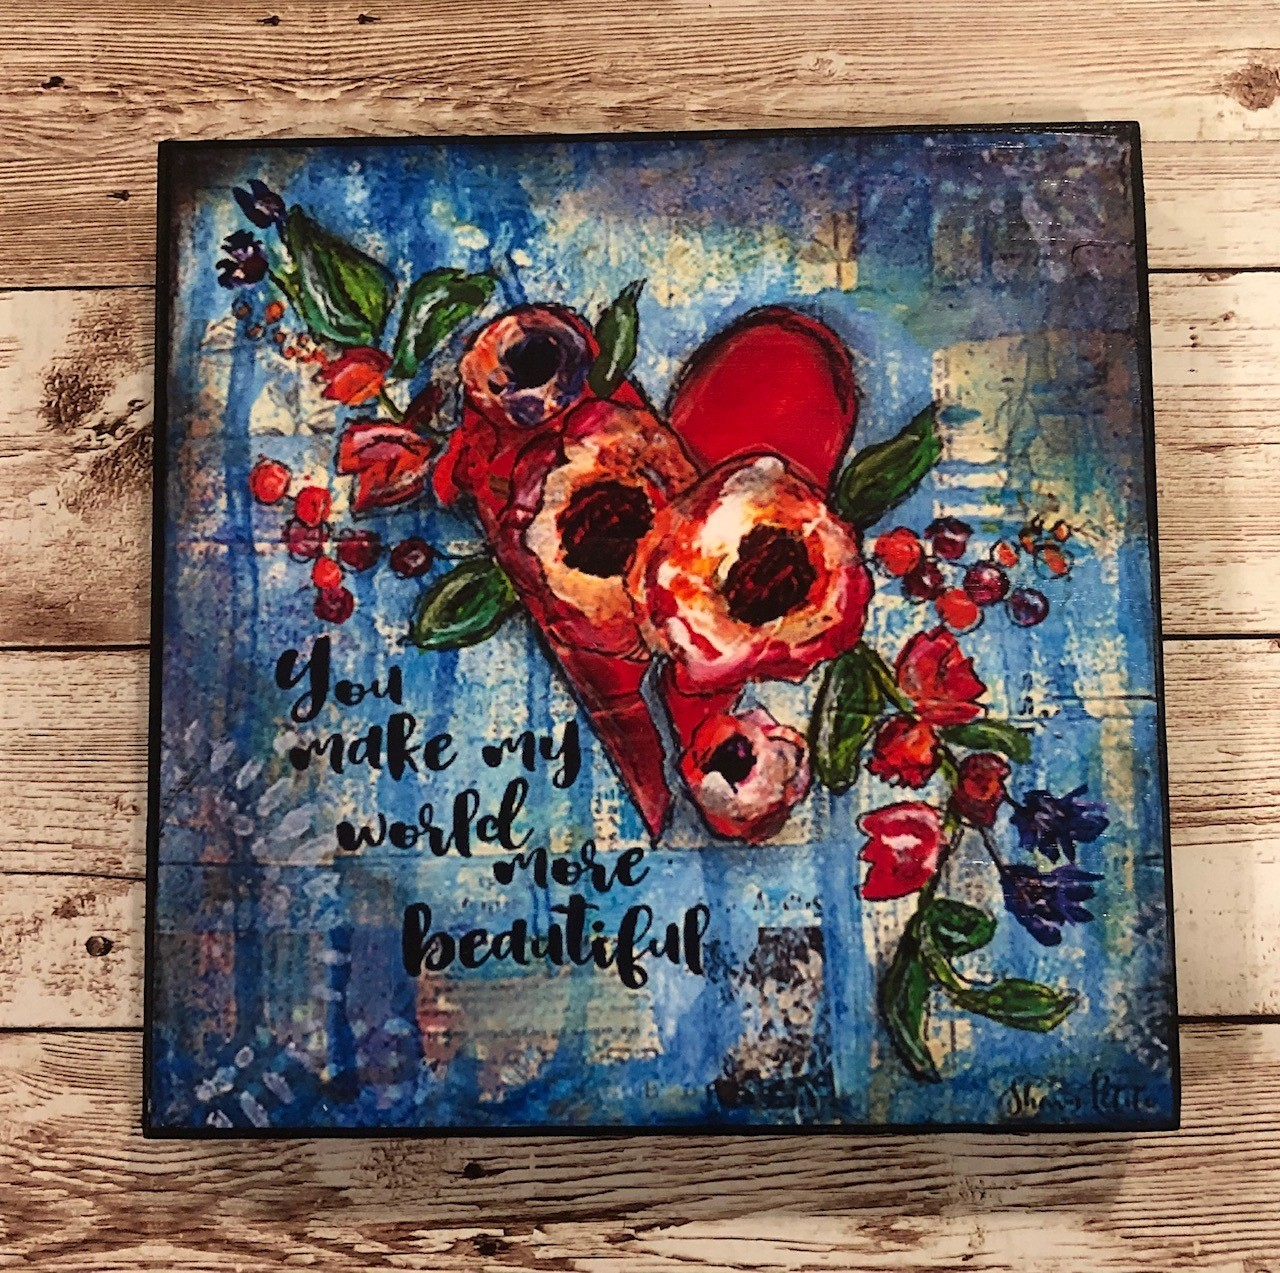 """You make my World more Beautiful"" 6x6 Clearance"